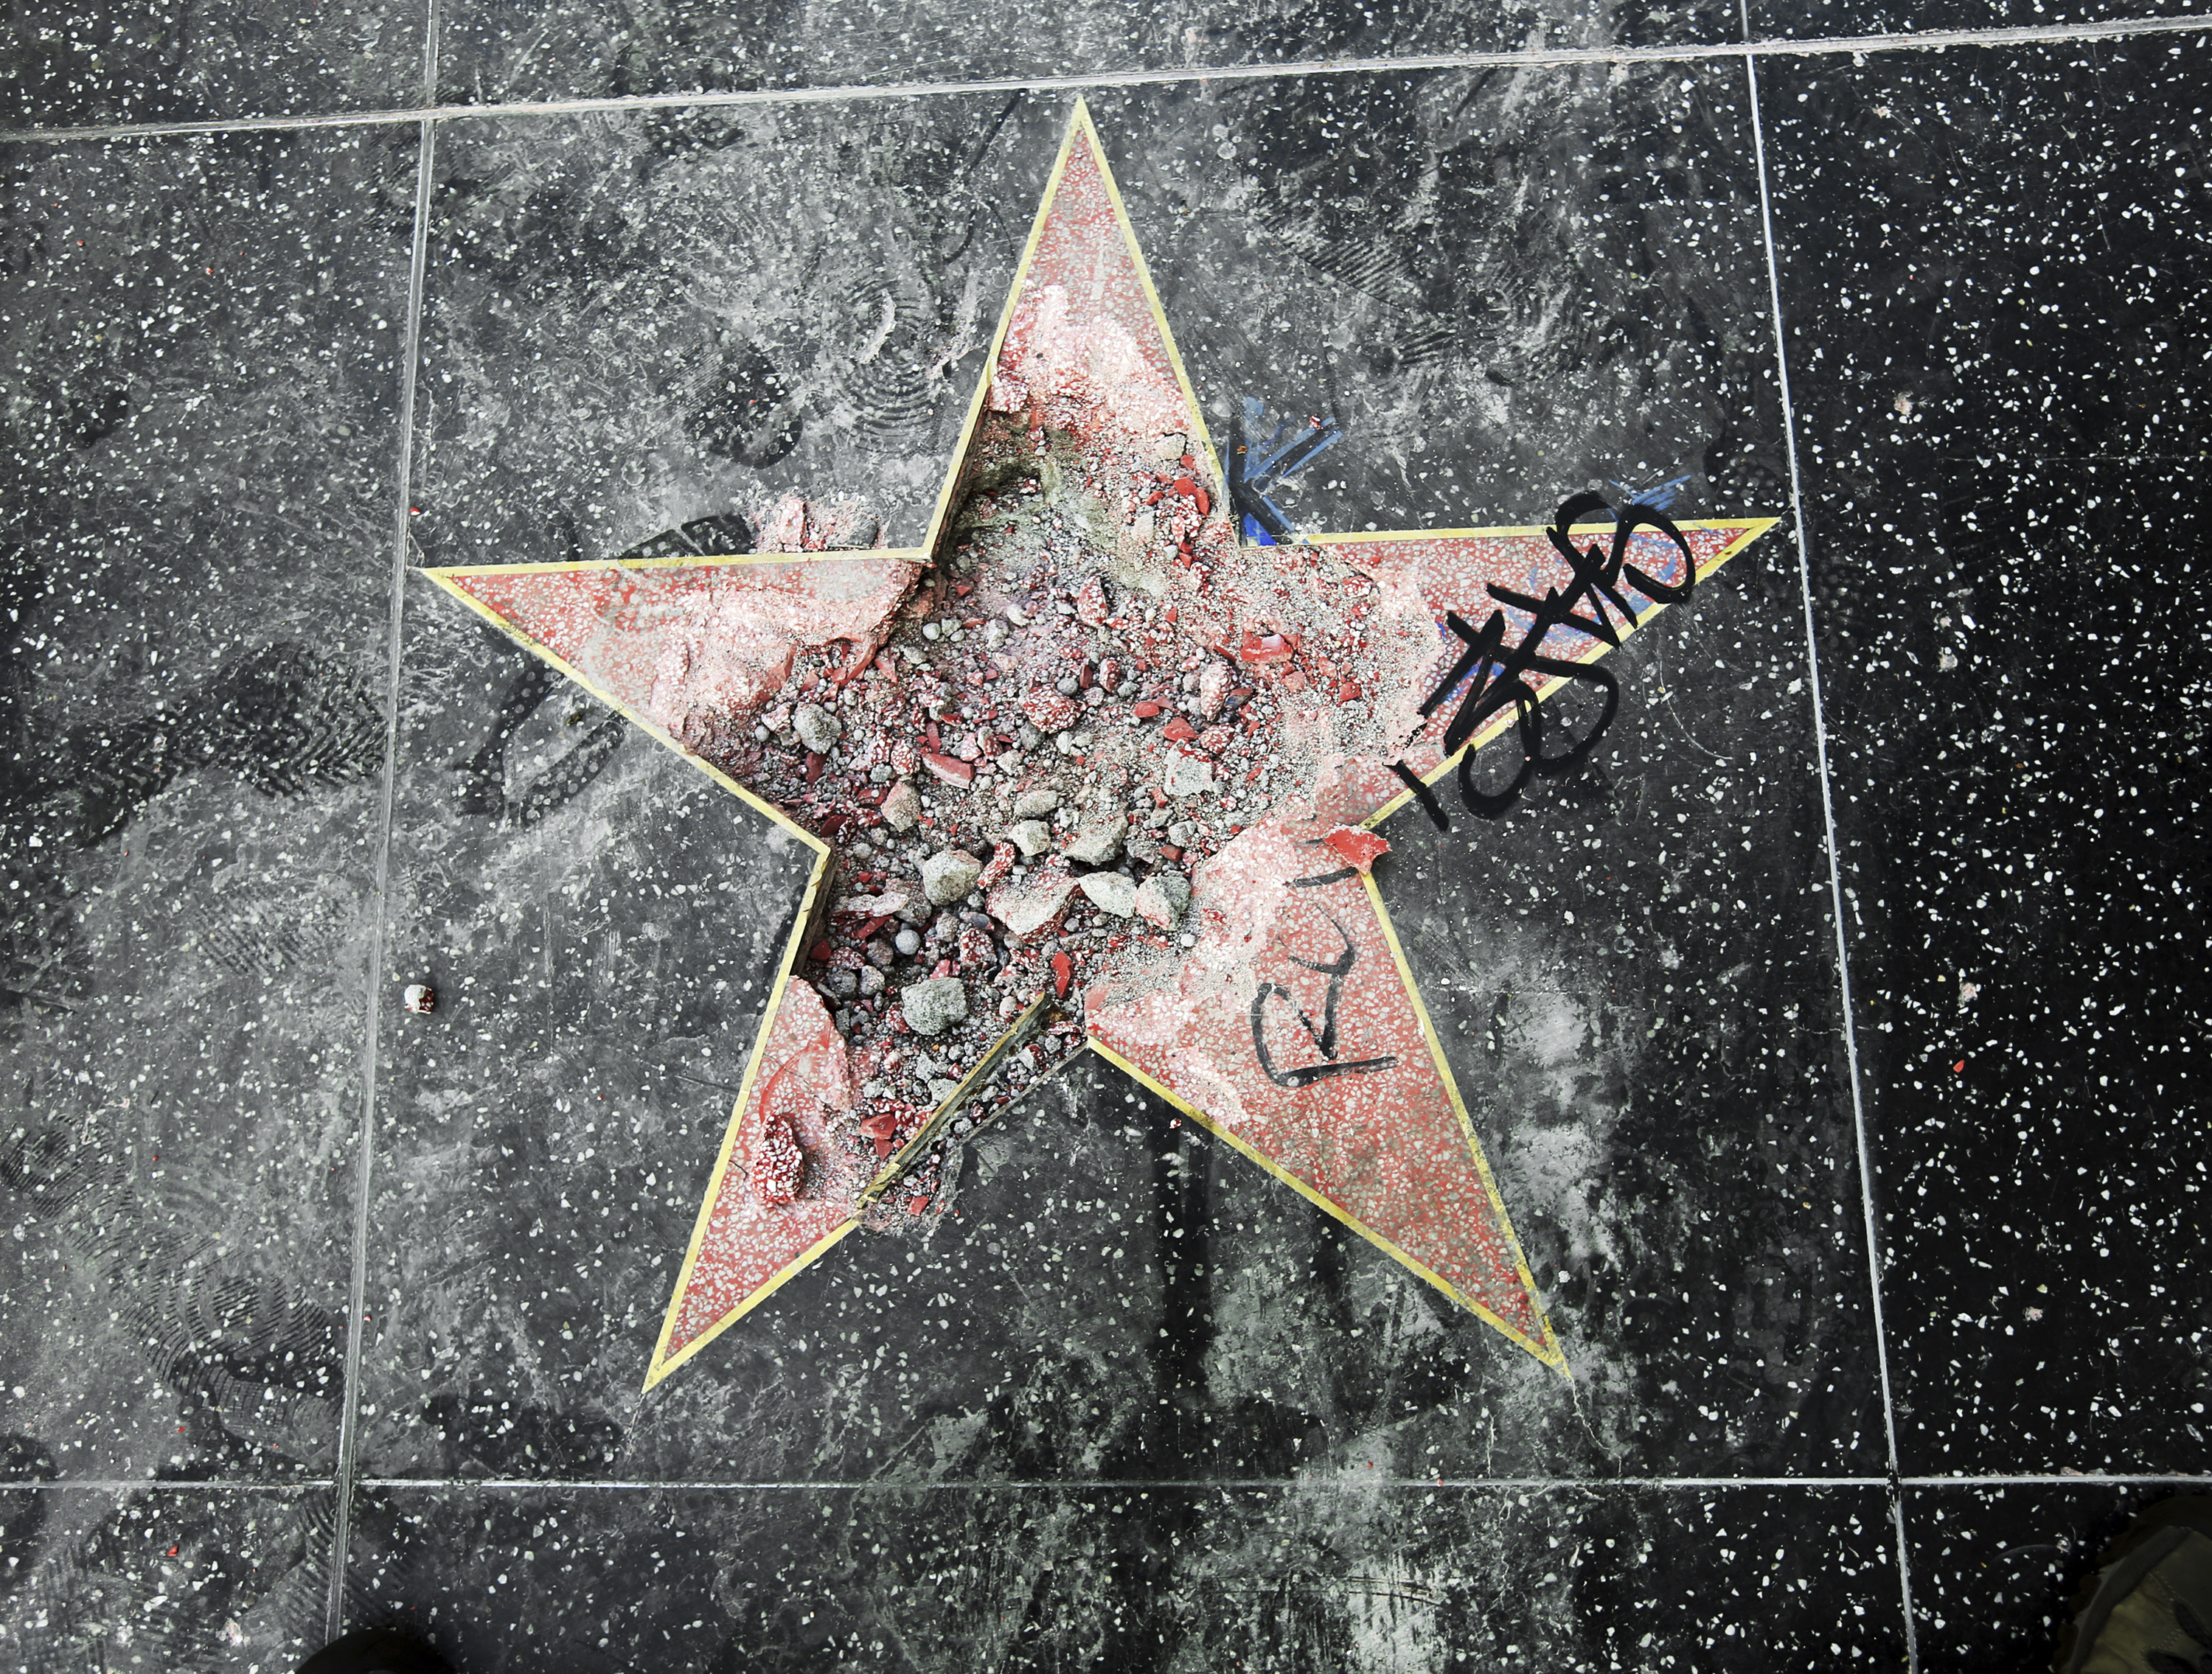 Donald Trump's star on the Hollywood Walk of Fame after it was vandalised in Los Angeles